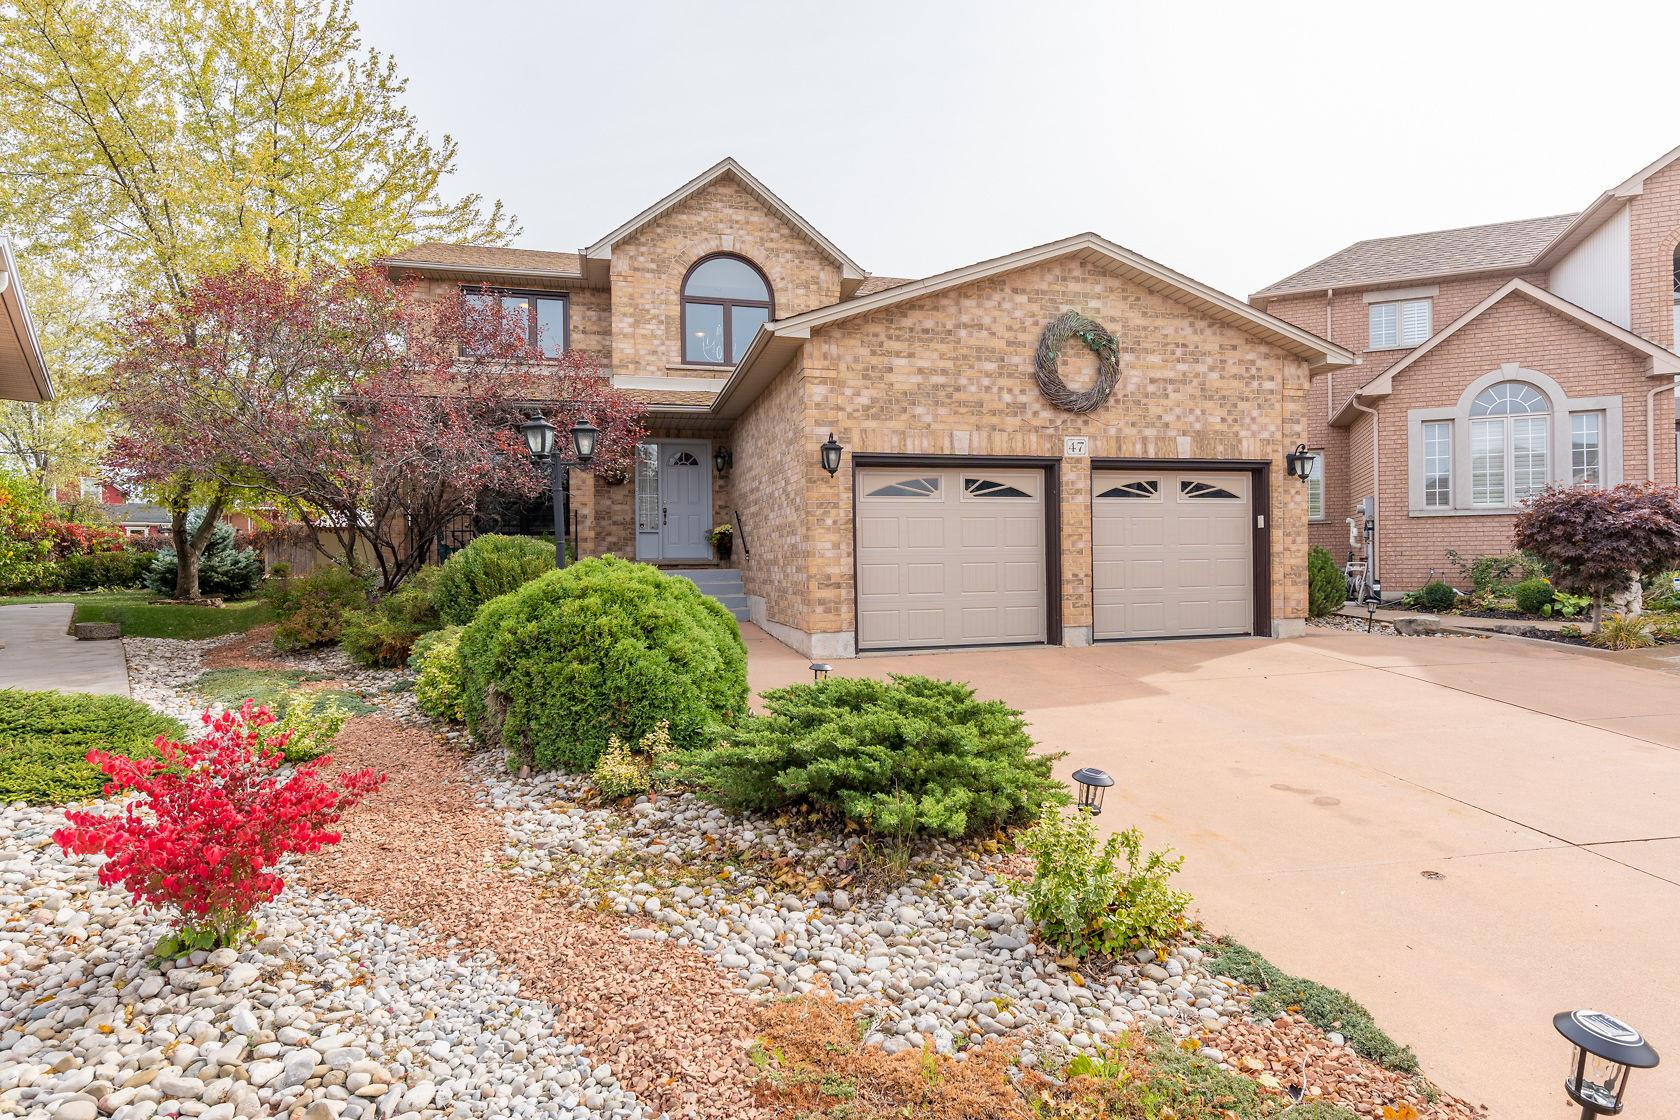 47 Chianti Cres, Stoney Creek, Hamilton